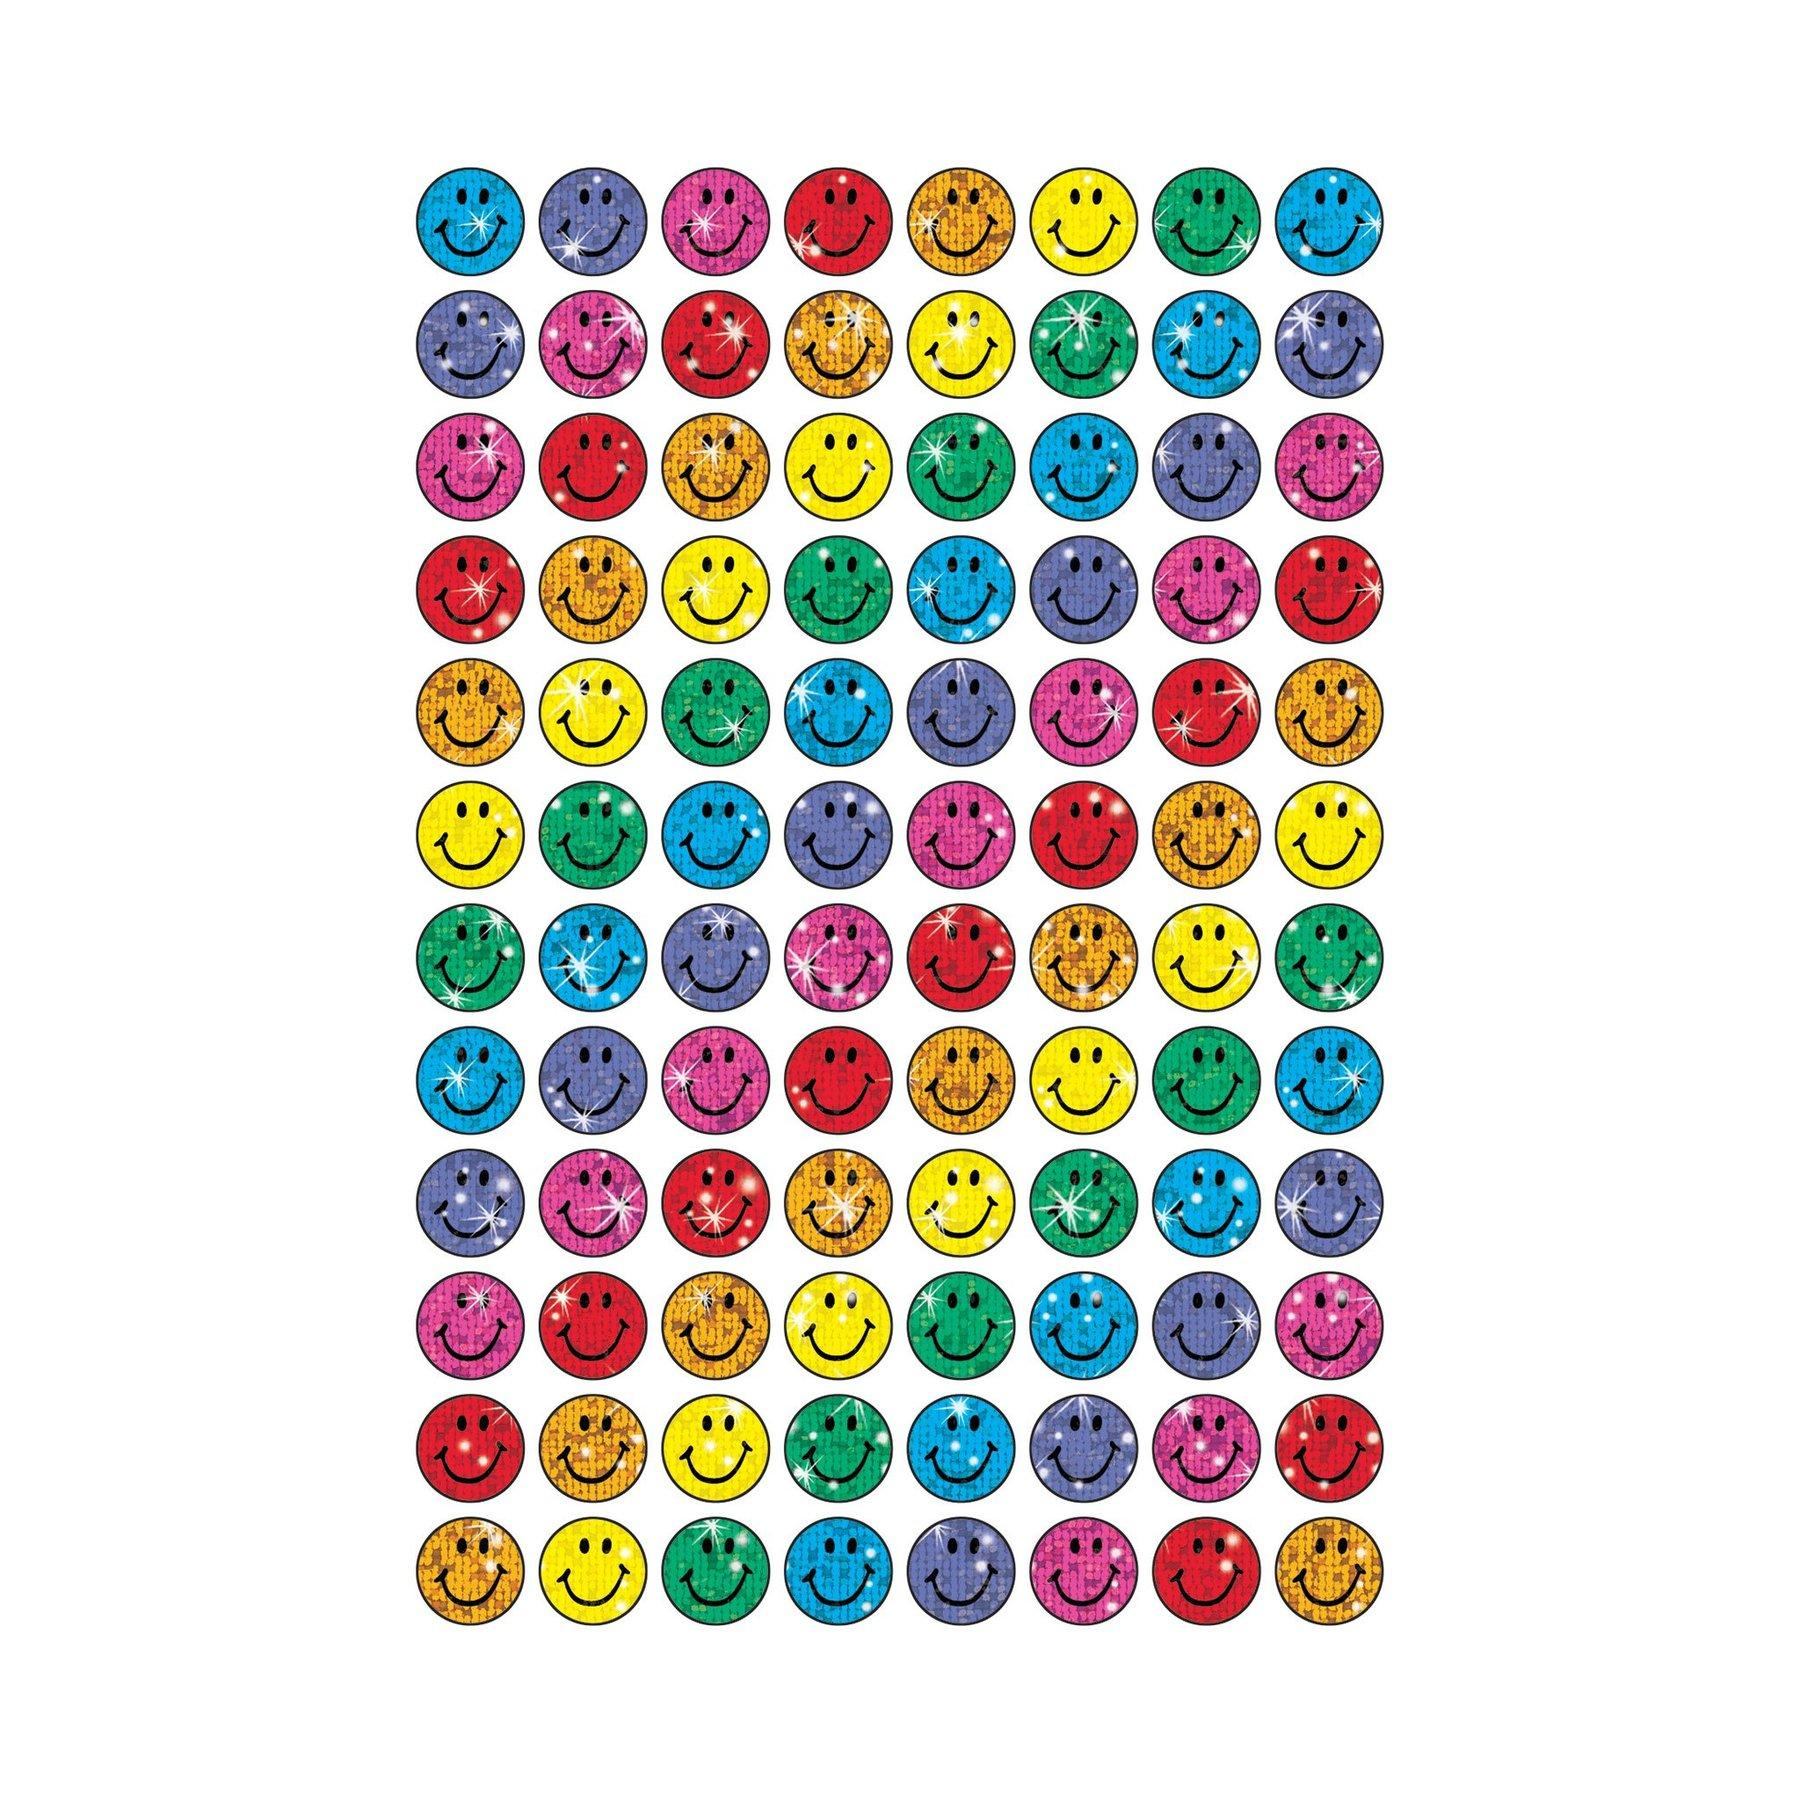 Autocollants Emoji | Colorful Smiles SuperSpots® Autocollants Mini x 400